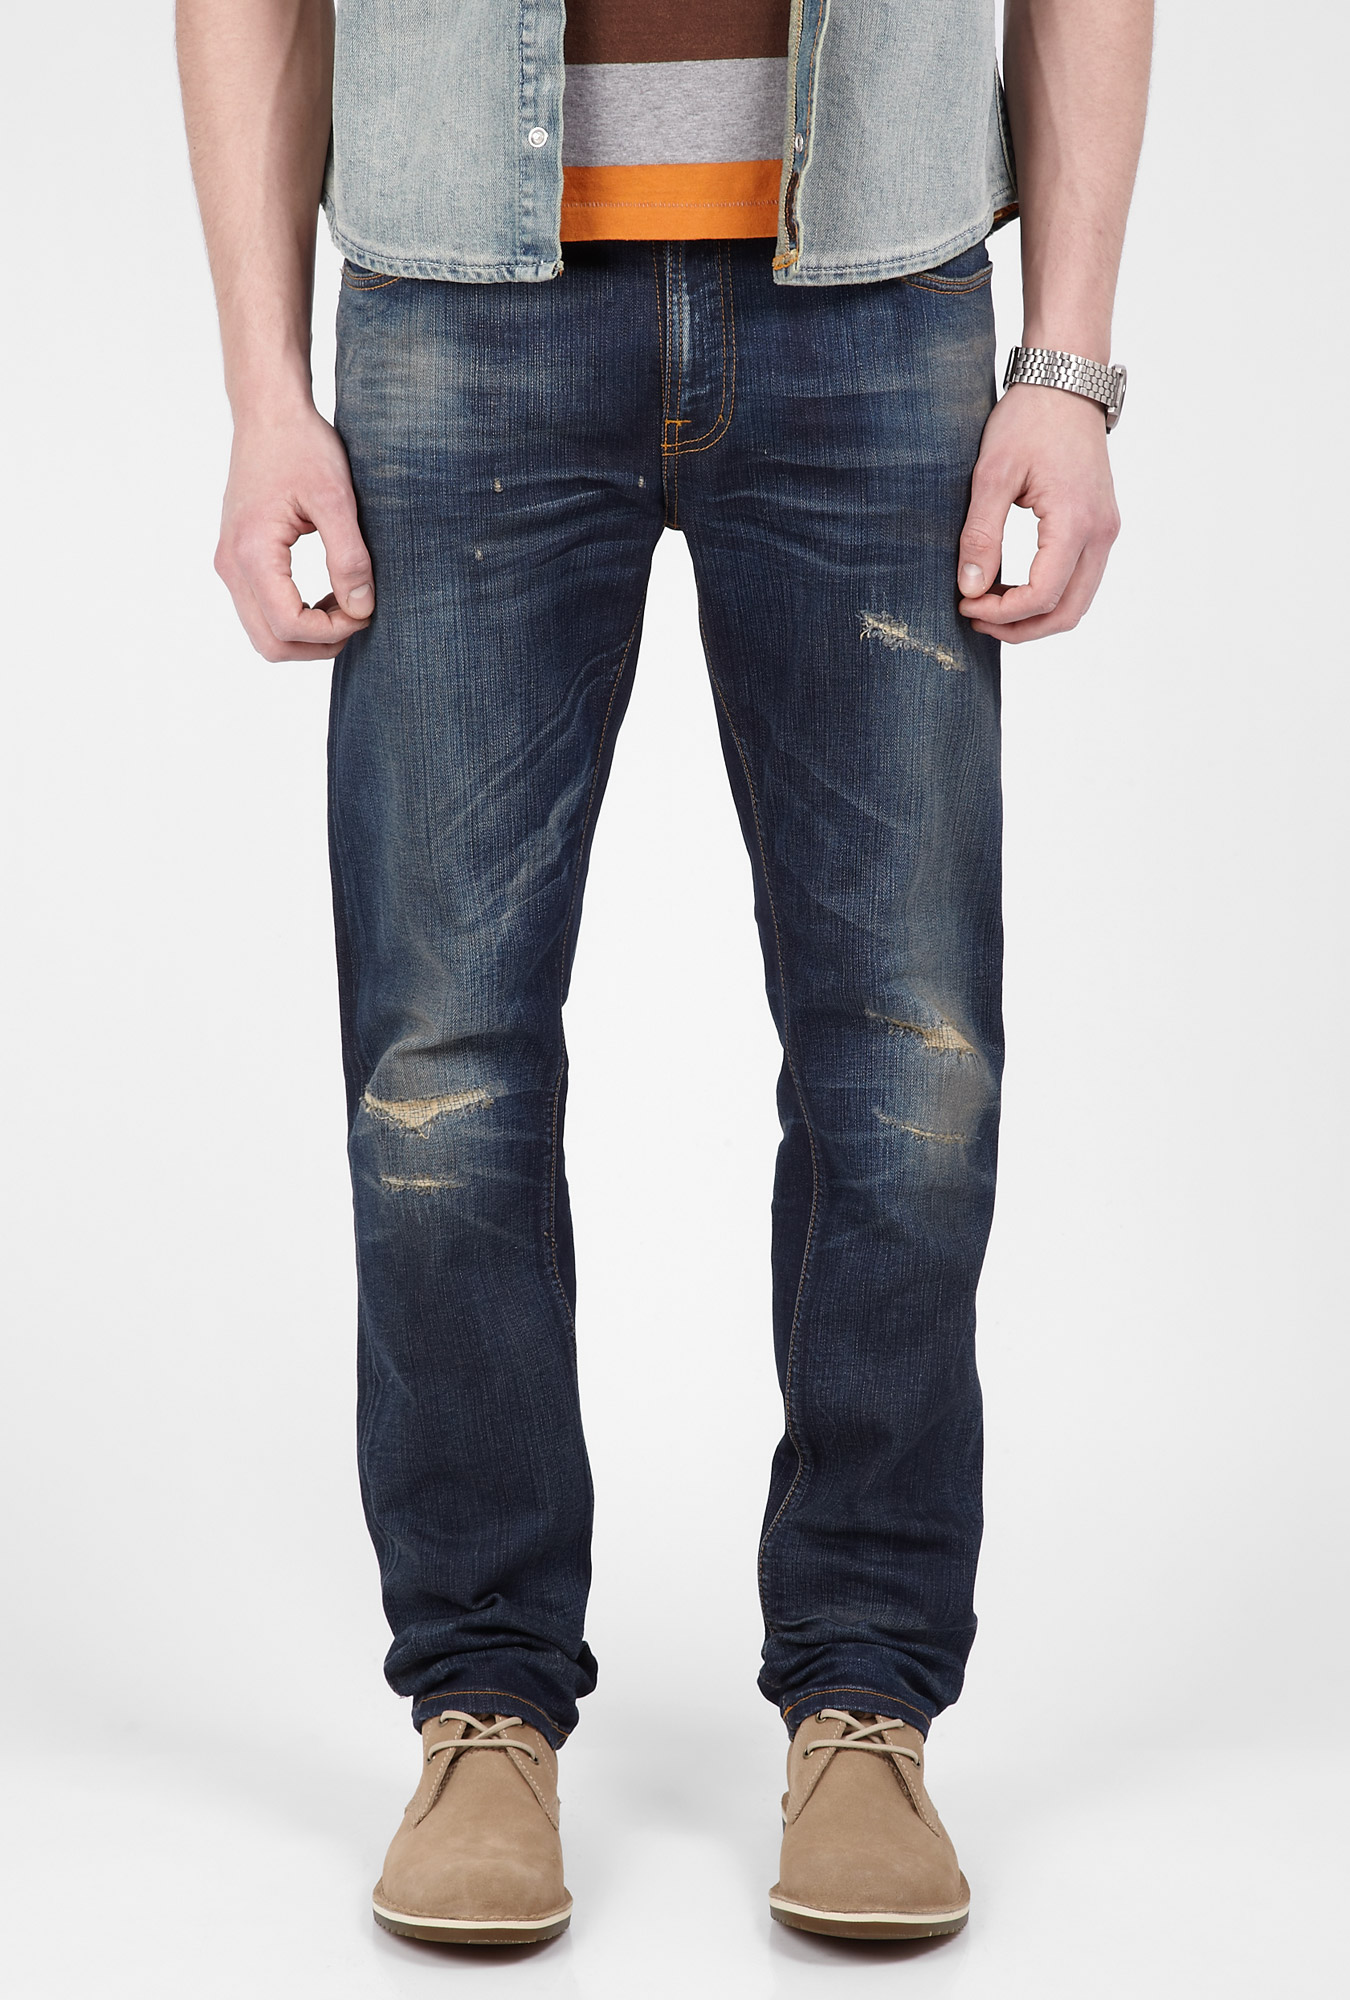 Nudie Jeans Thin Finn Peter Replica Blue In Blue For